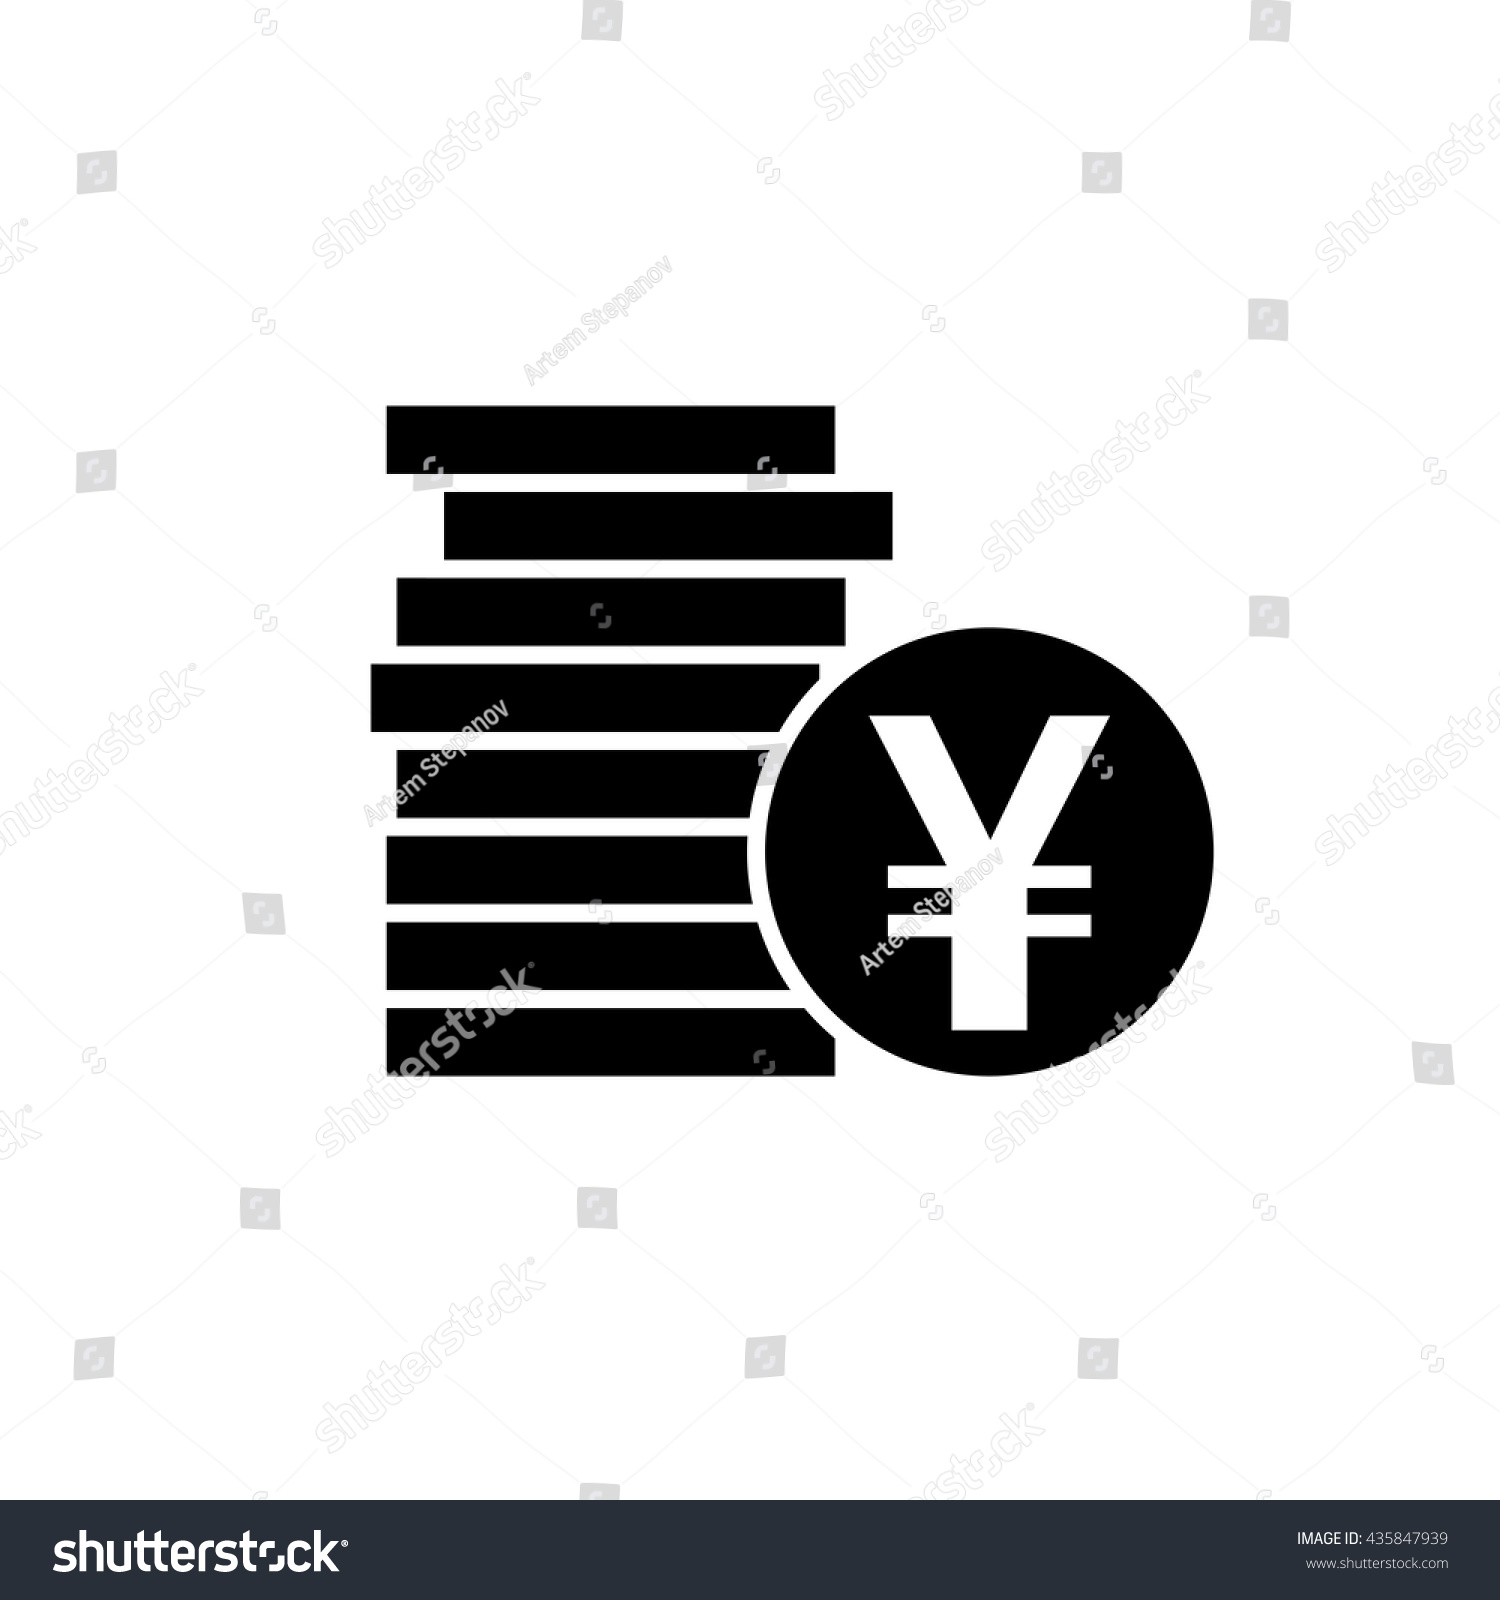 Japanese yen chinese yuan currency symbol stock vector 435847939 japanese yen or chinese yuan currency symbol flat icon for apps and websites biocorpaavc Image collections